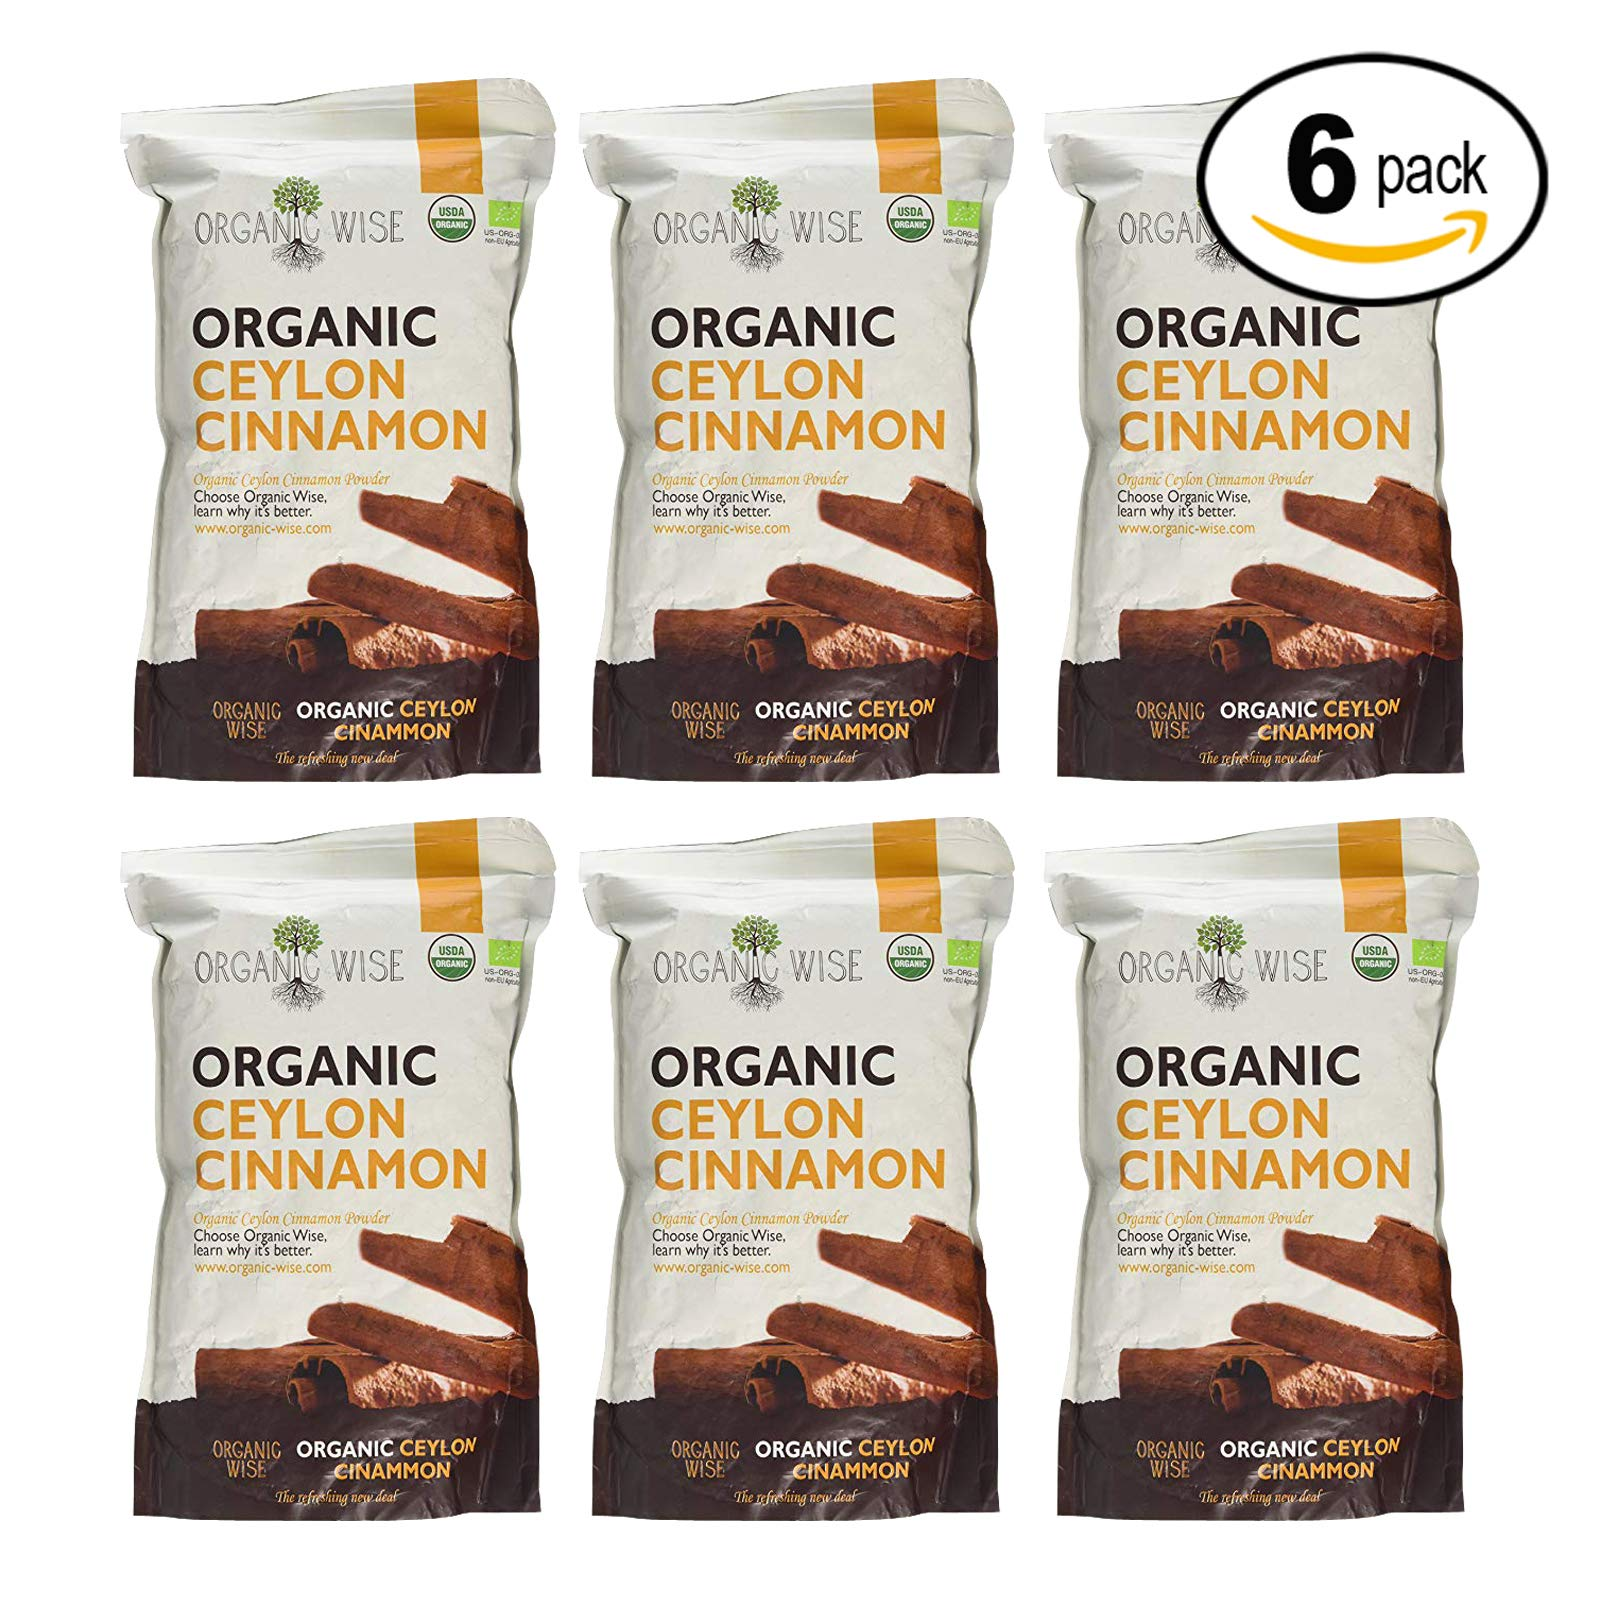 Organic Wise Ceylon Cinnamon Ground Powder, 1 lb-From a USDA Certified Organic Farm and Packed In The USA-6 Pack Bundle by Organic Wise (Image #1)